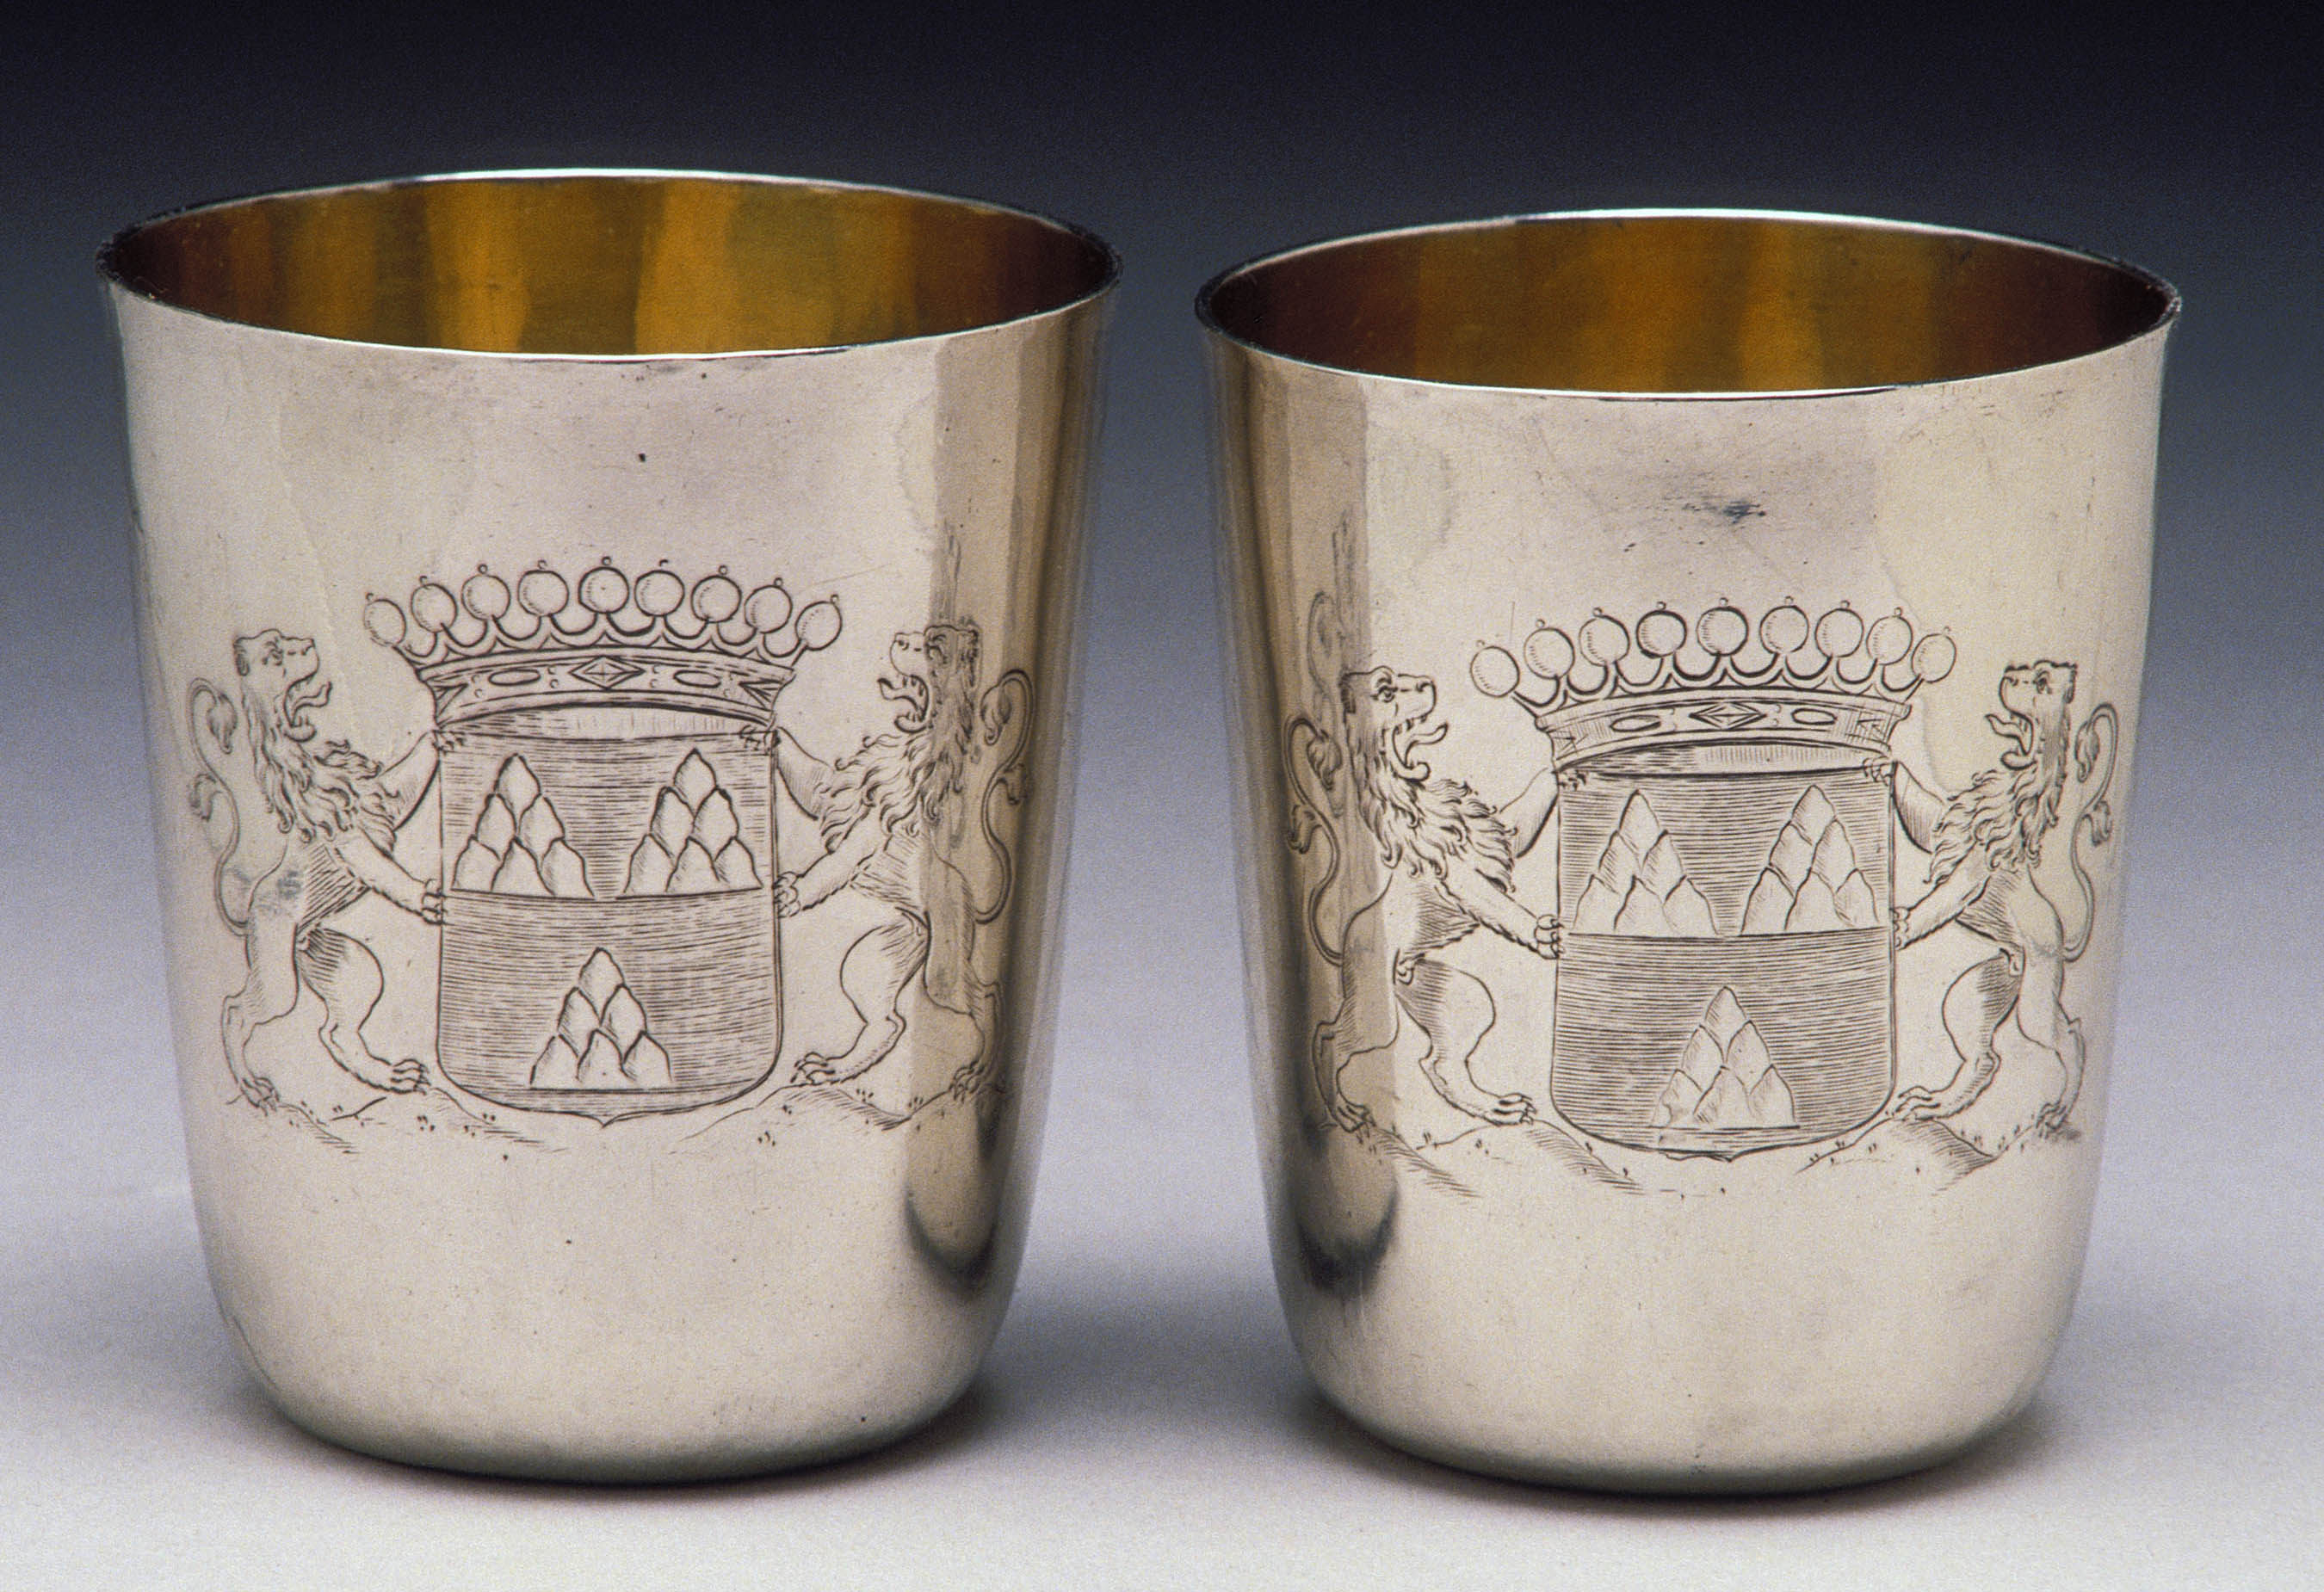 Adam Loofs (1645-1710), Tumblers, ca. 1688, silver, 9.22 x 7.8 cm Detroit Institute of Arts